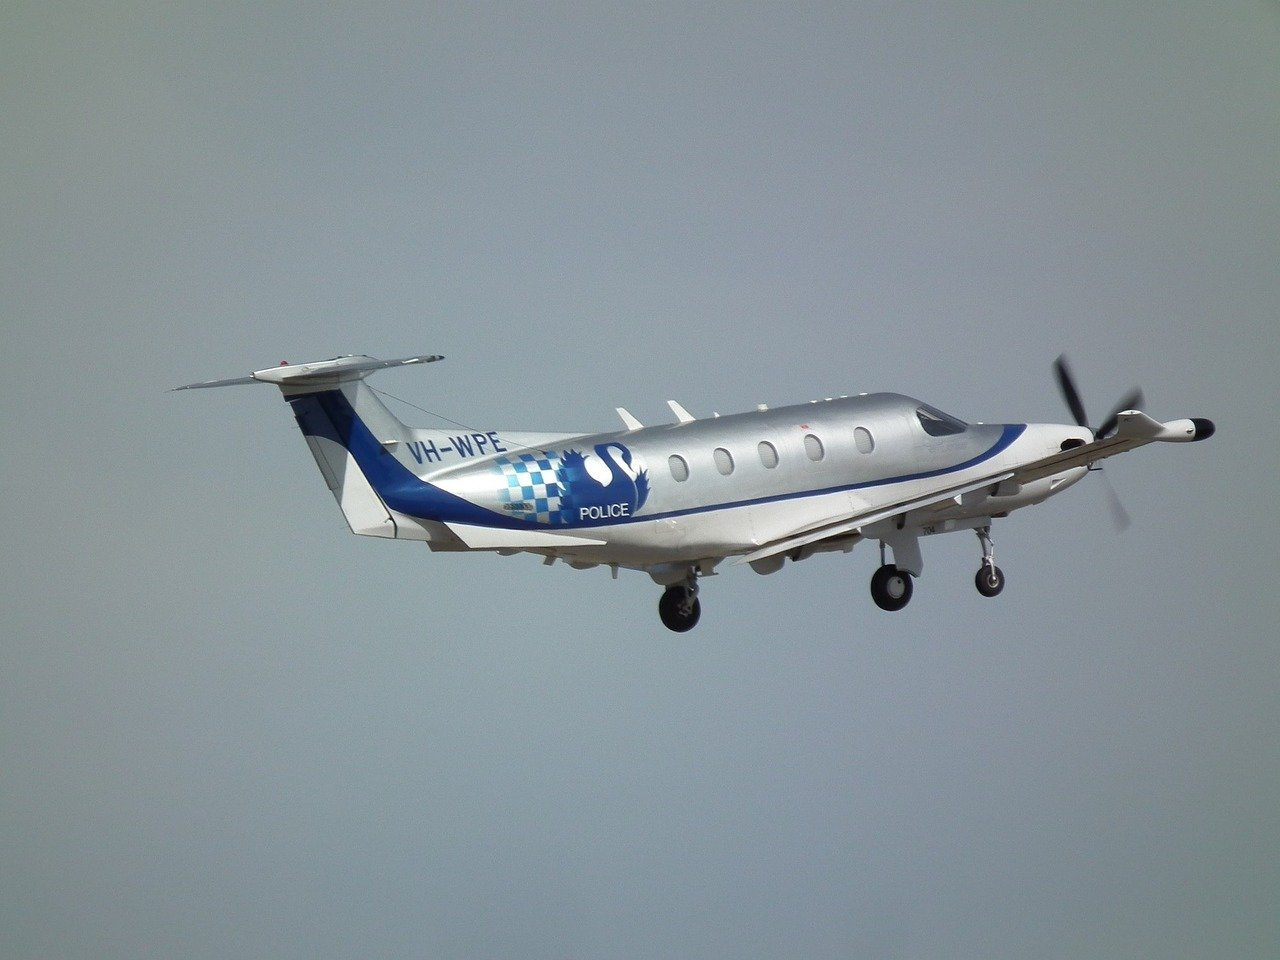 Un avion de type Pilatus PC-12. | Photo : Pixabay